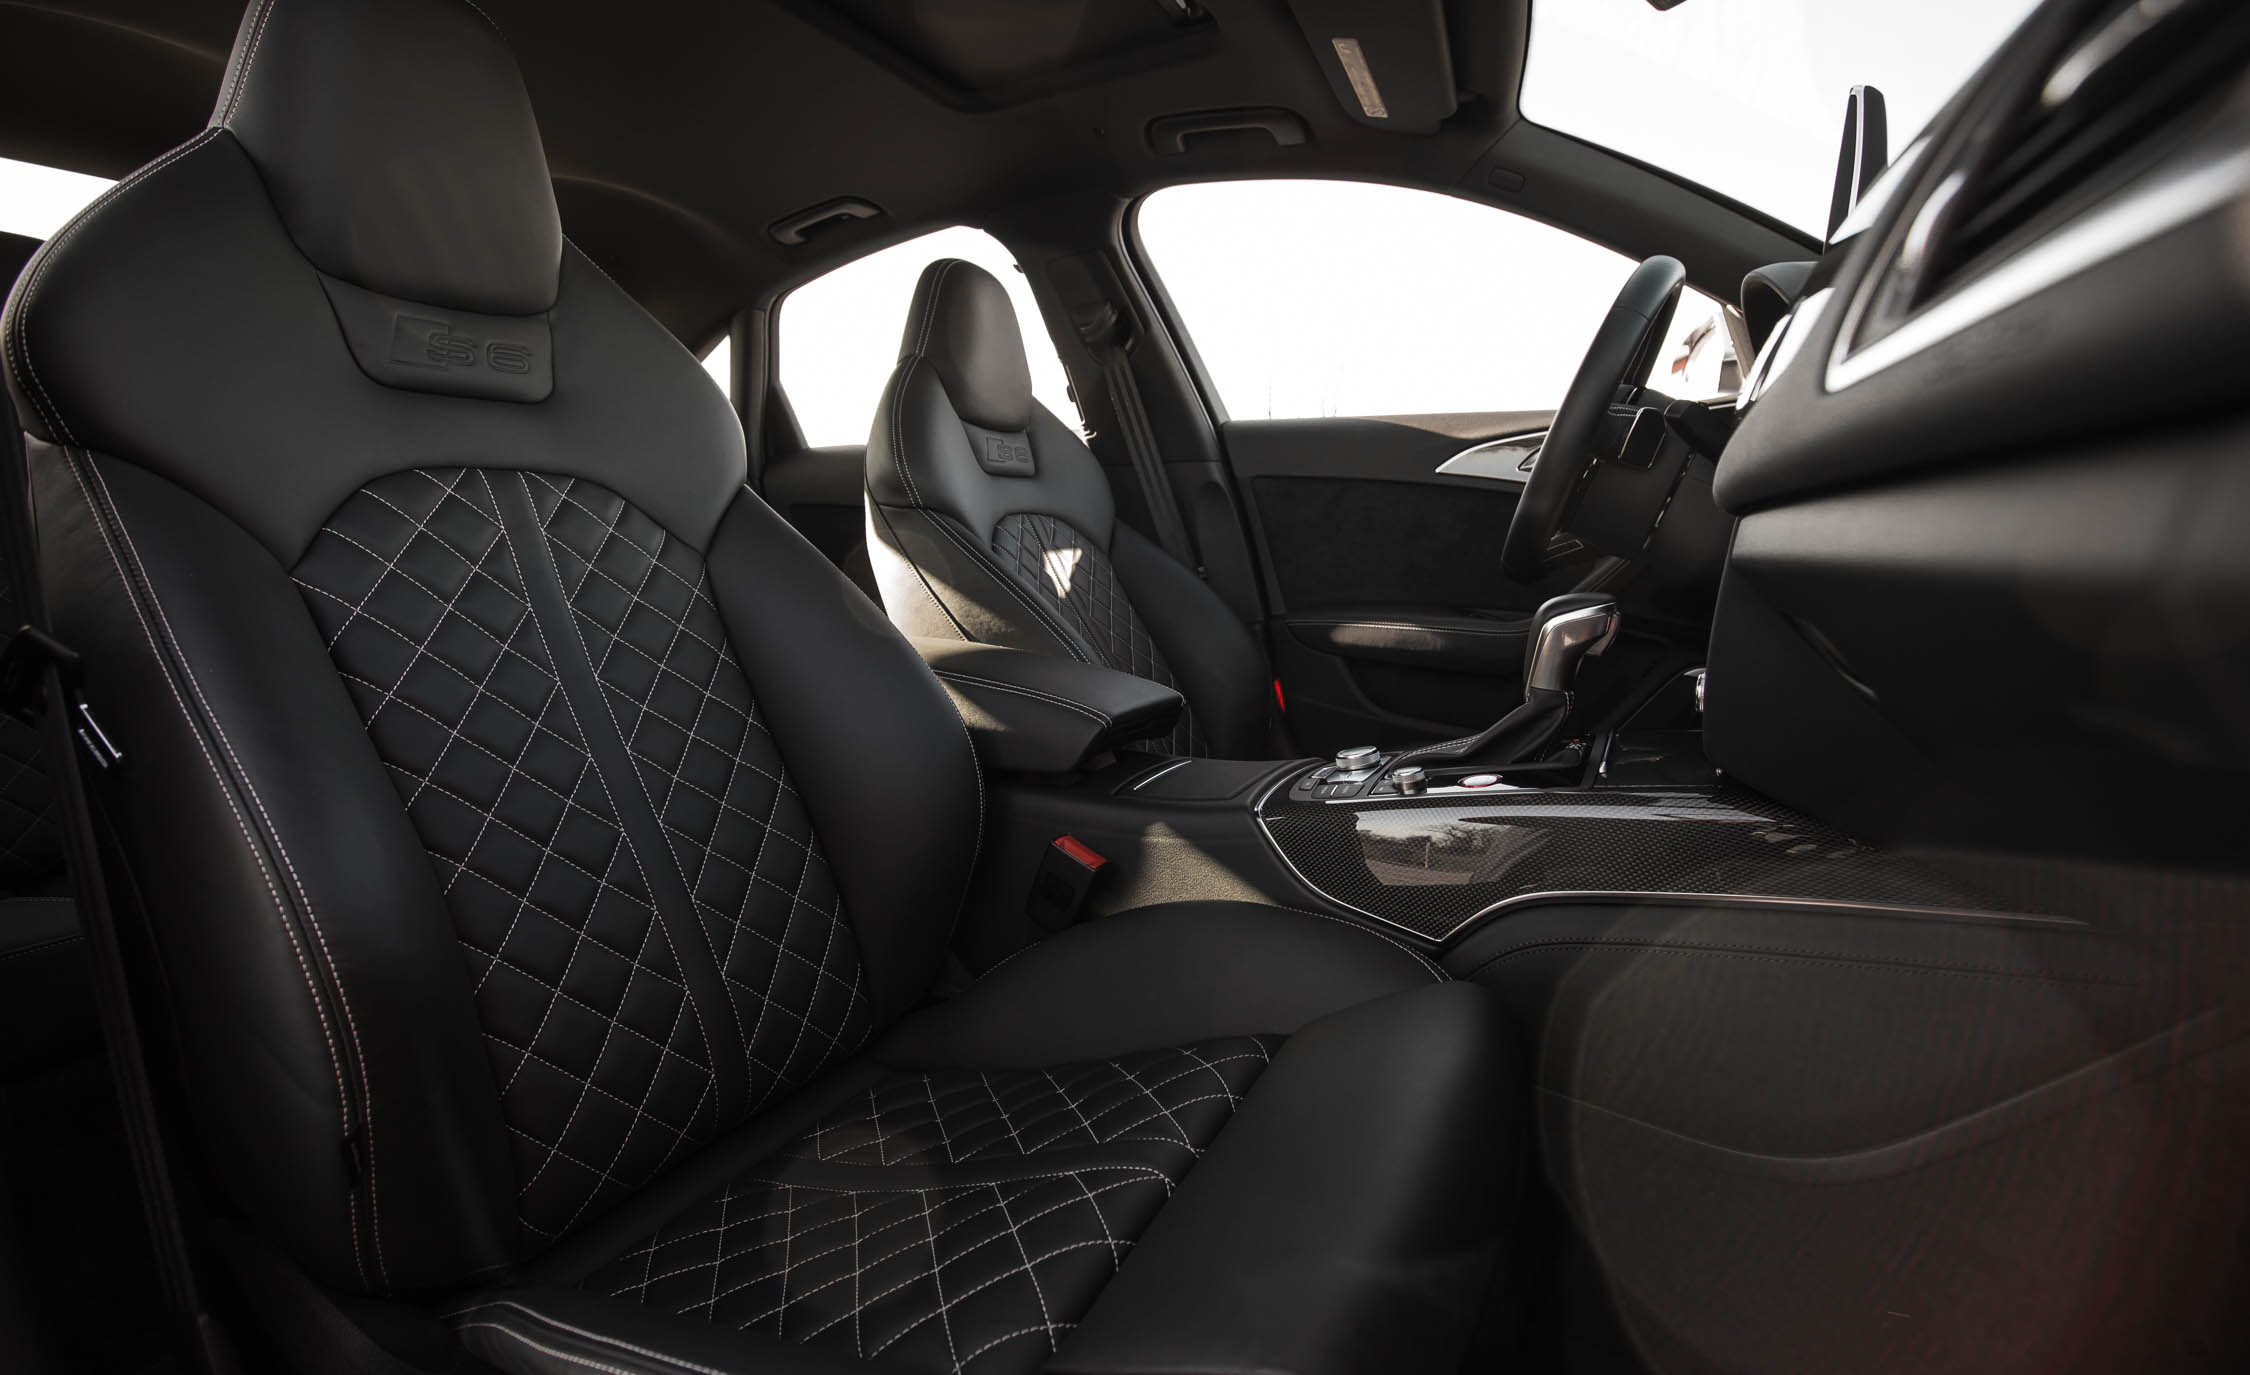 2016 Audi S6 Interior Seats Front